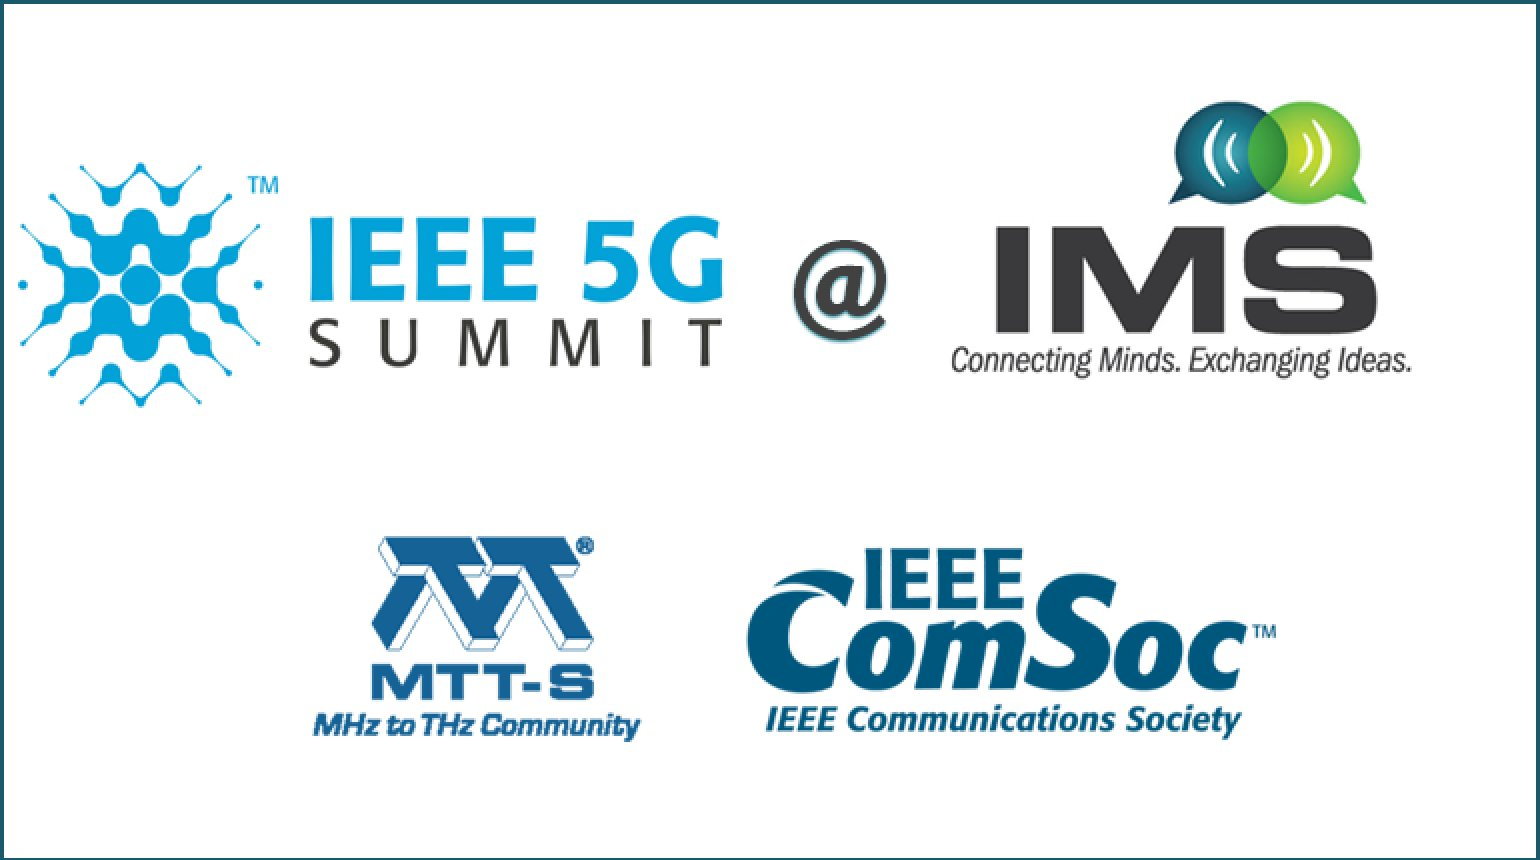 IEEE 5G Summit at IMS 2018